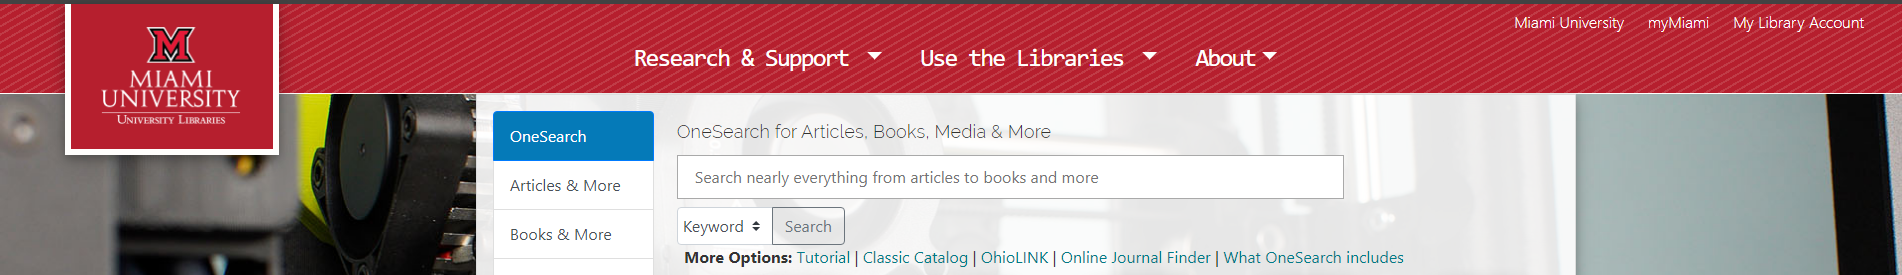 A screenshot of the upper portion of the homepage of the new University Libraries website